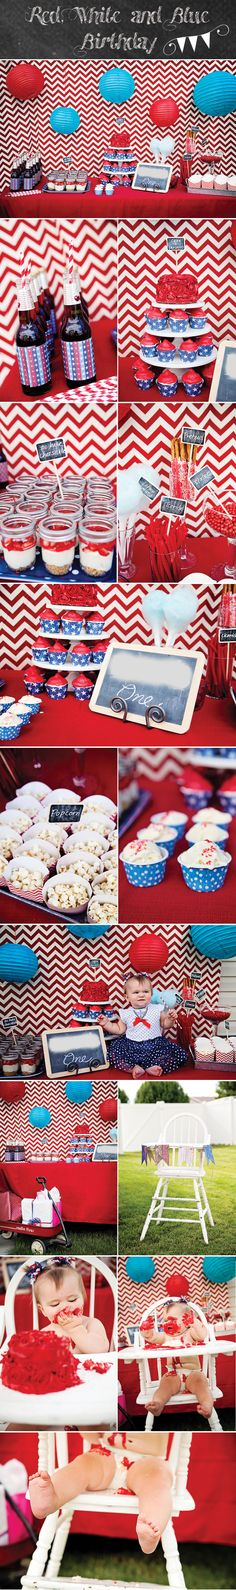 Chelsea Peterson Photography: Red, White and Blue Party {Utah Party and Child Photographer}